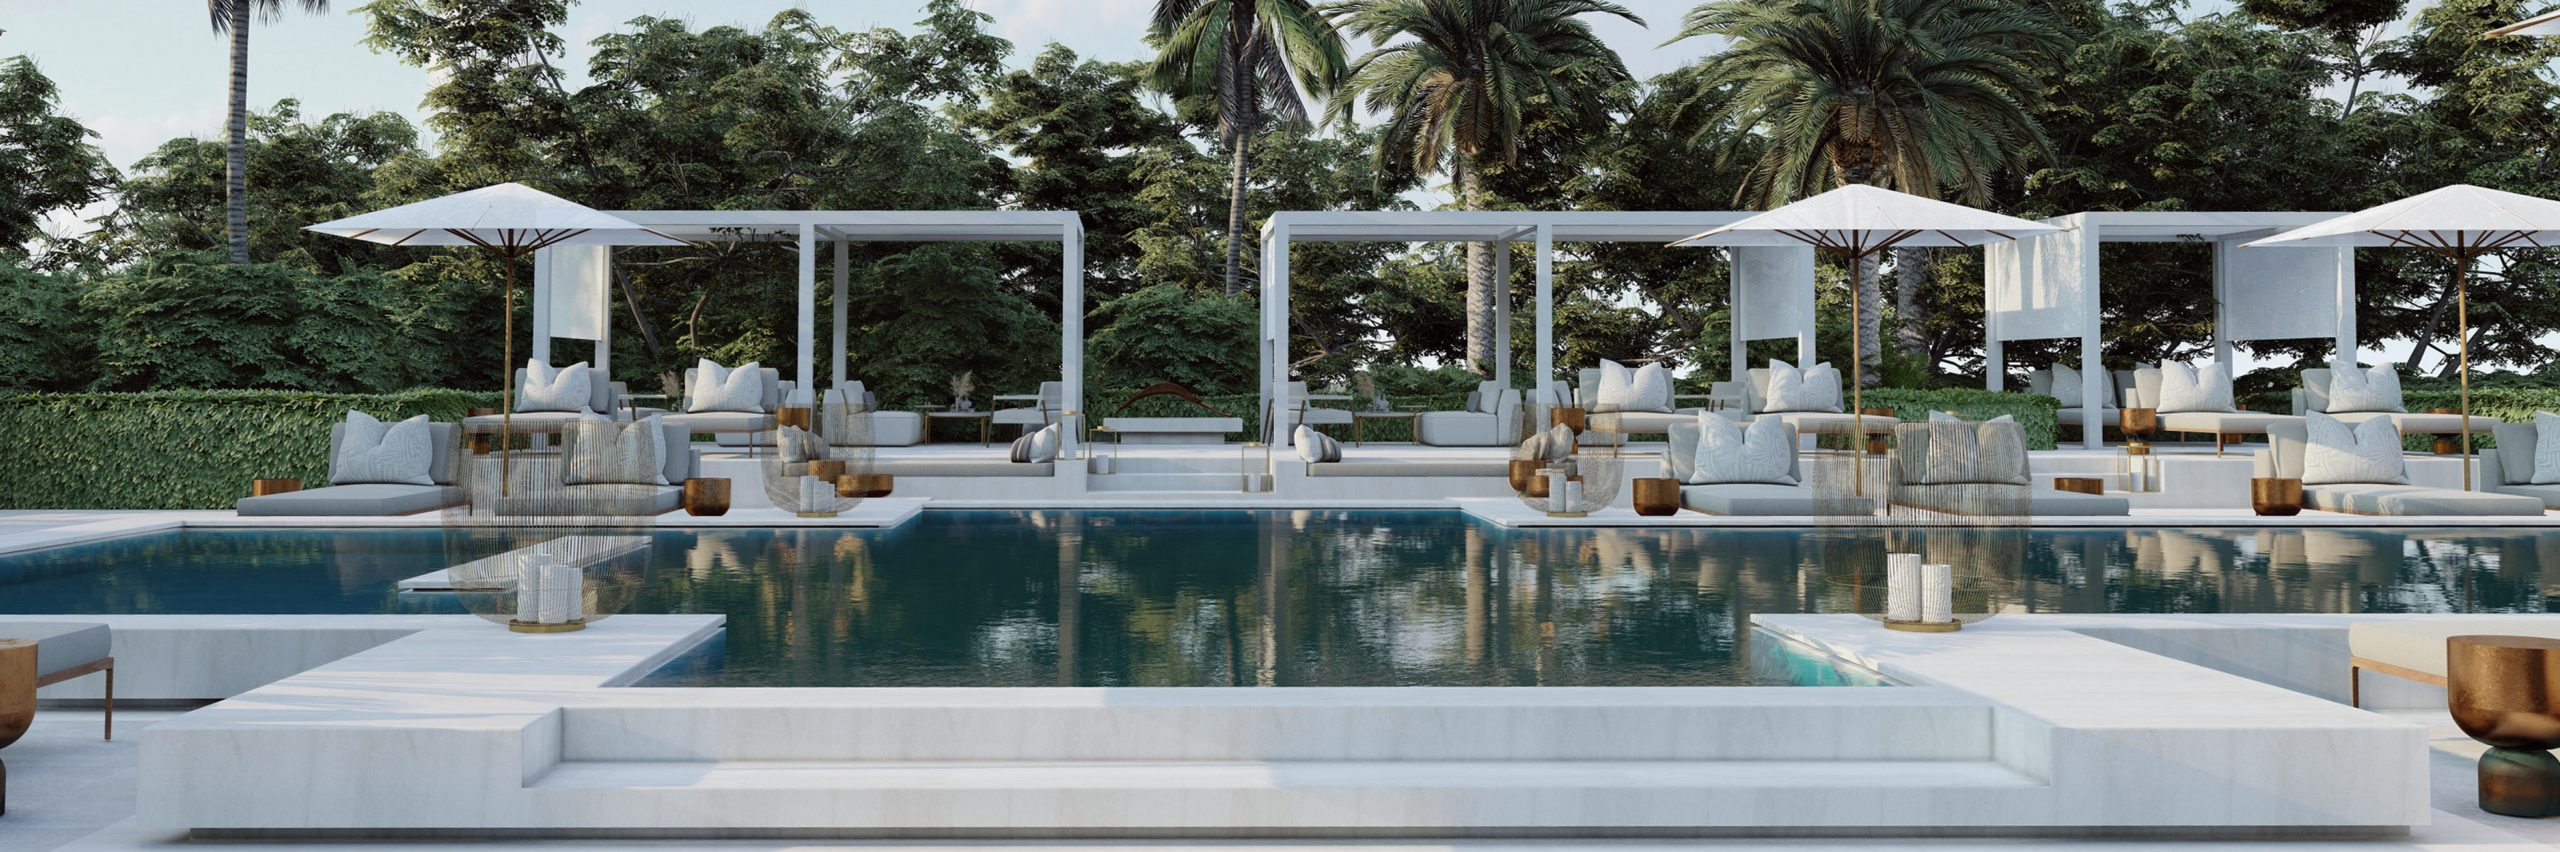 More Than Years of Designing, Constructing and Maintaining Swimming Pools in The Dubai